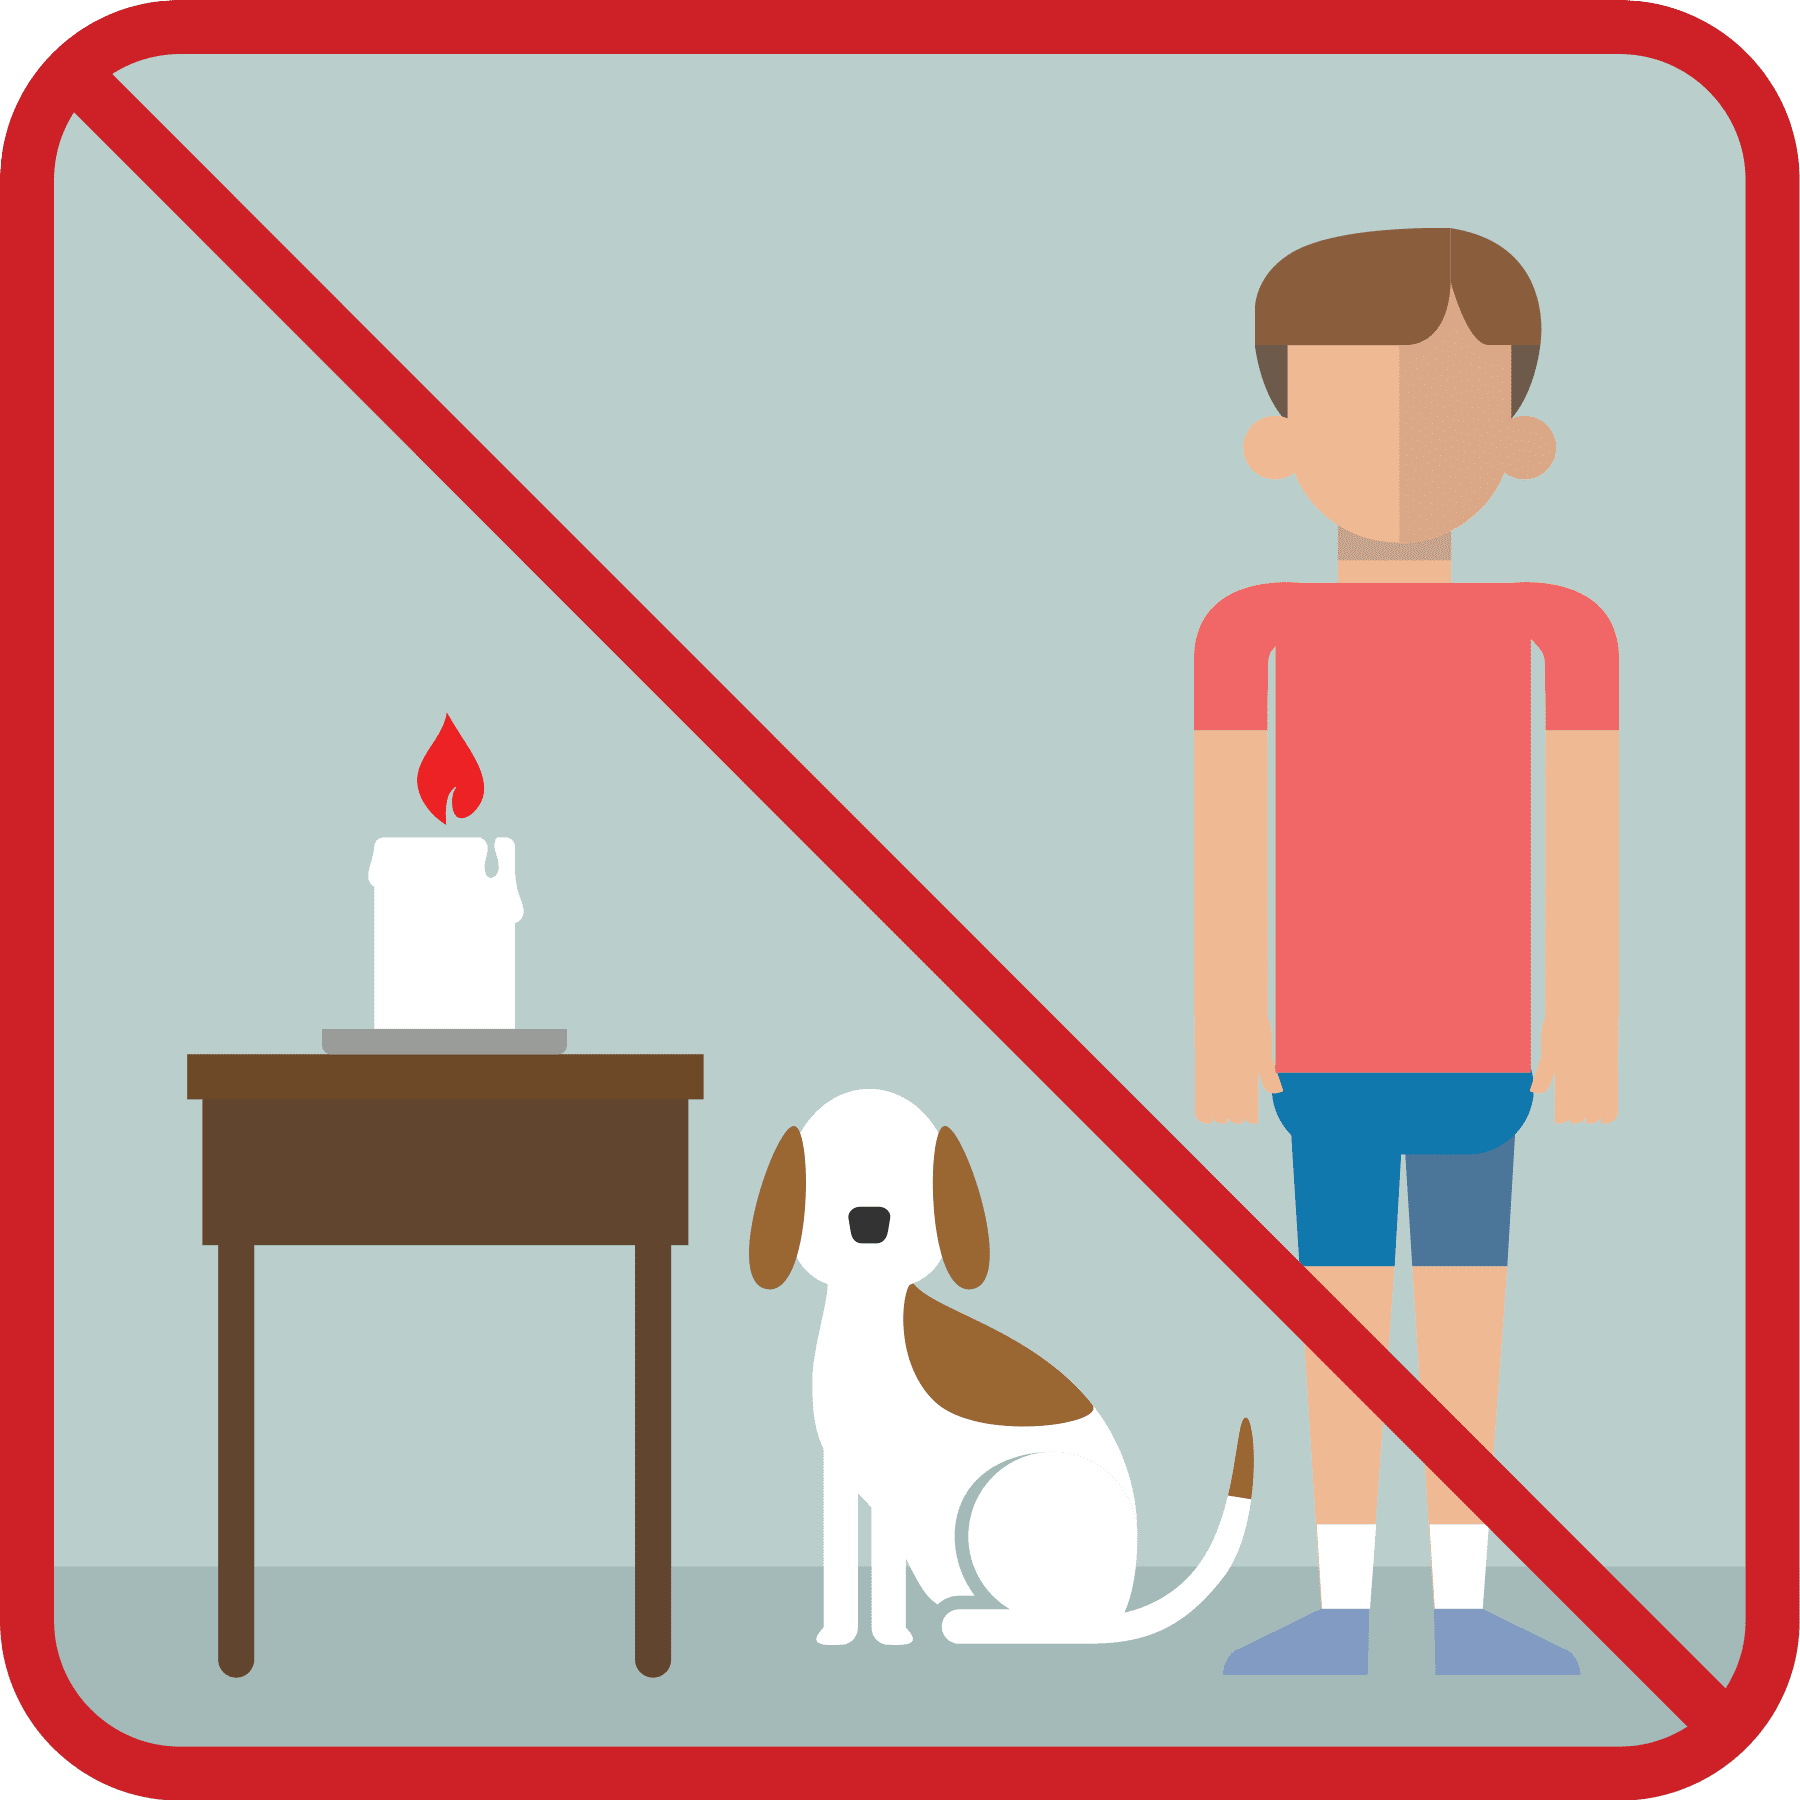 Never leave a candle lit with children and pets unsupervised